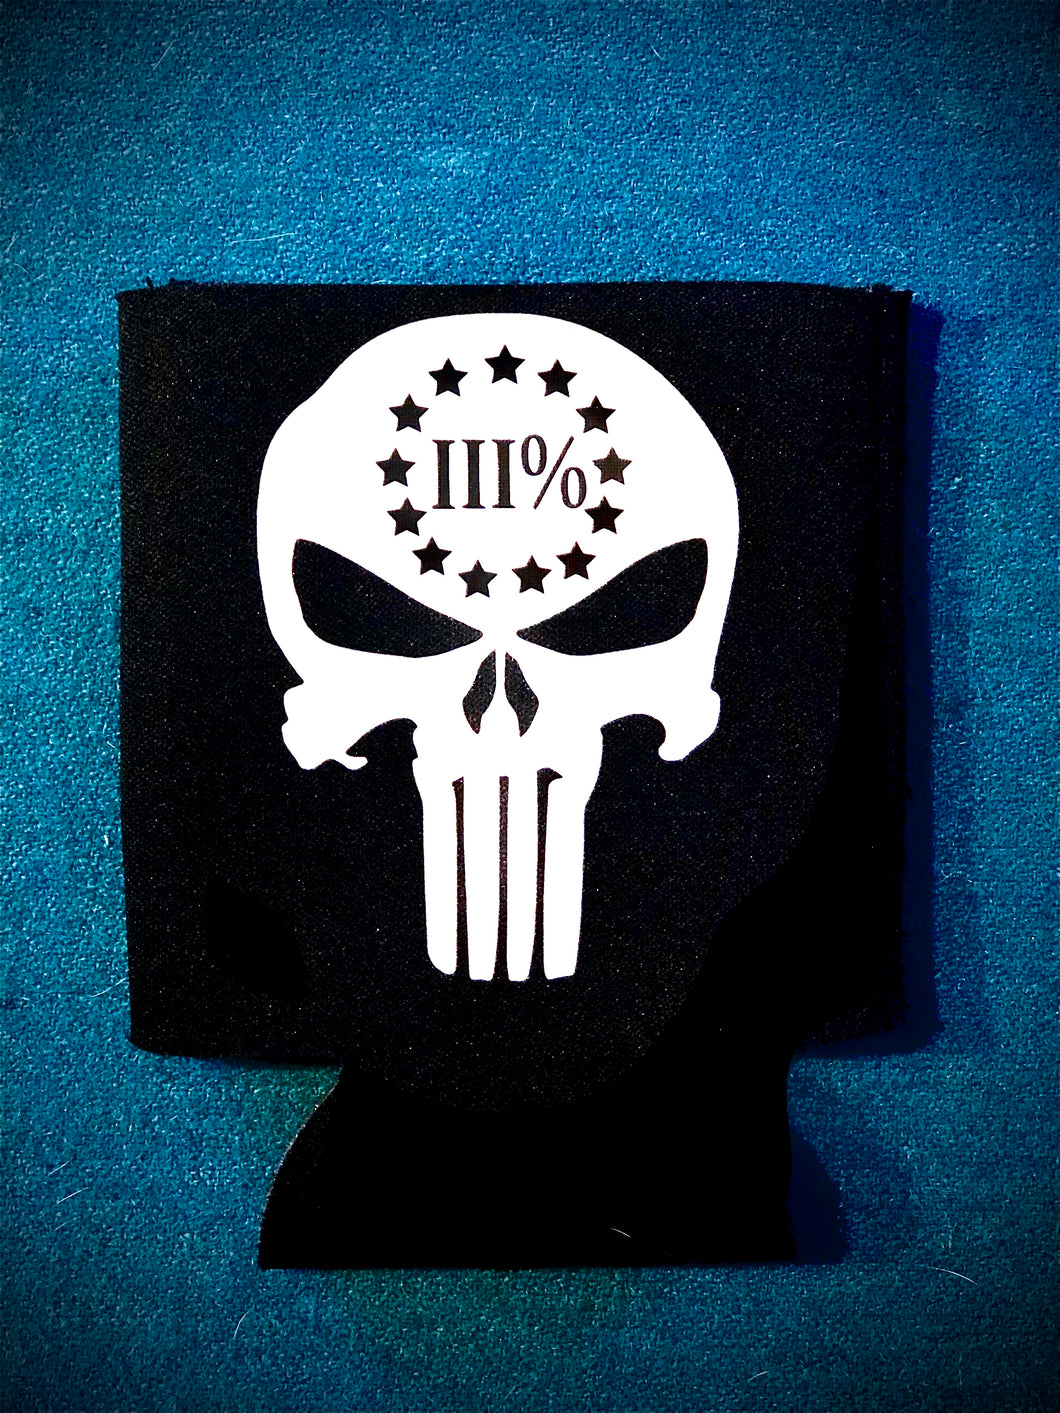 We are the III% Koozie